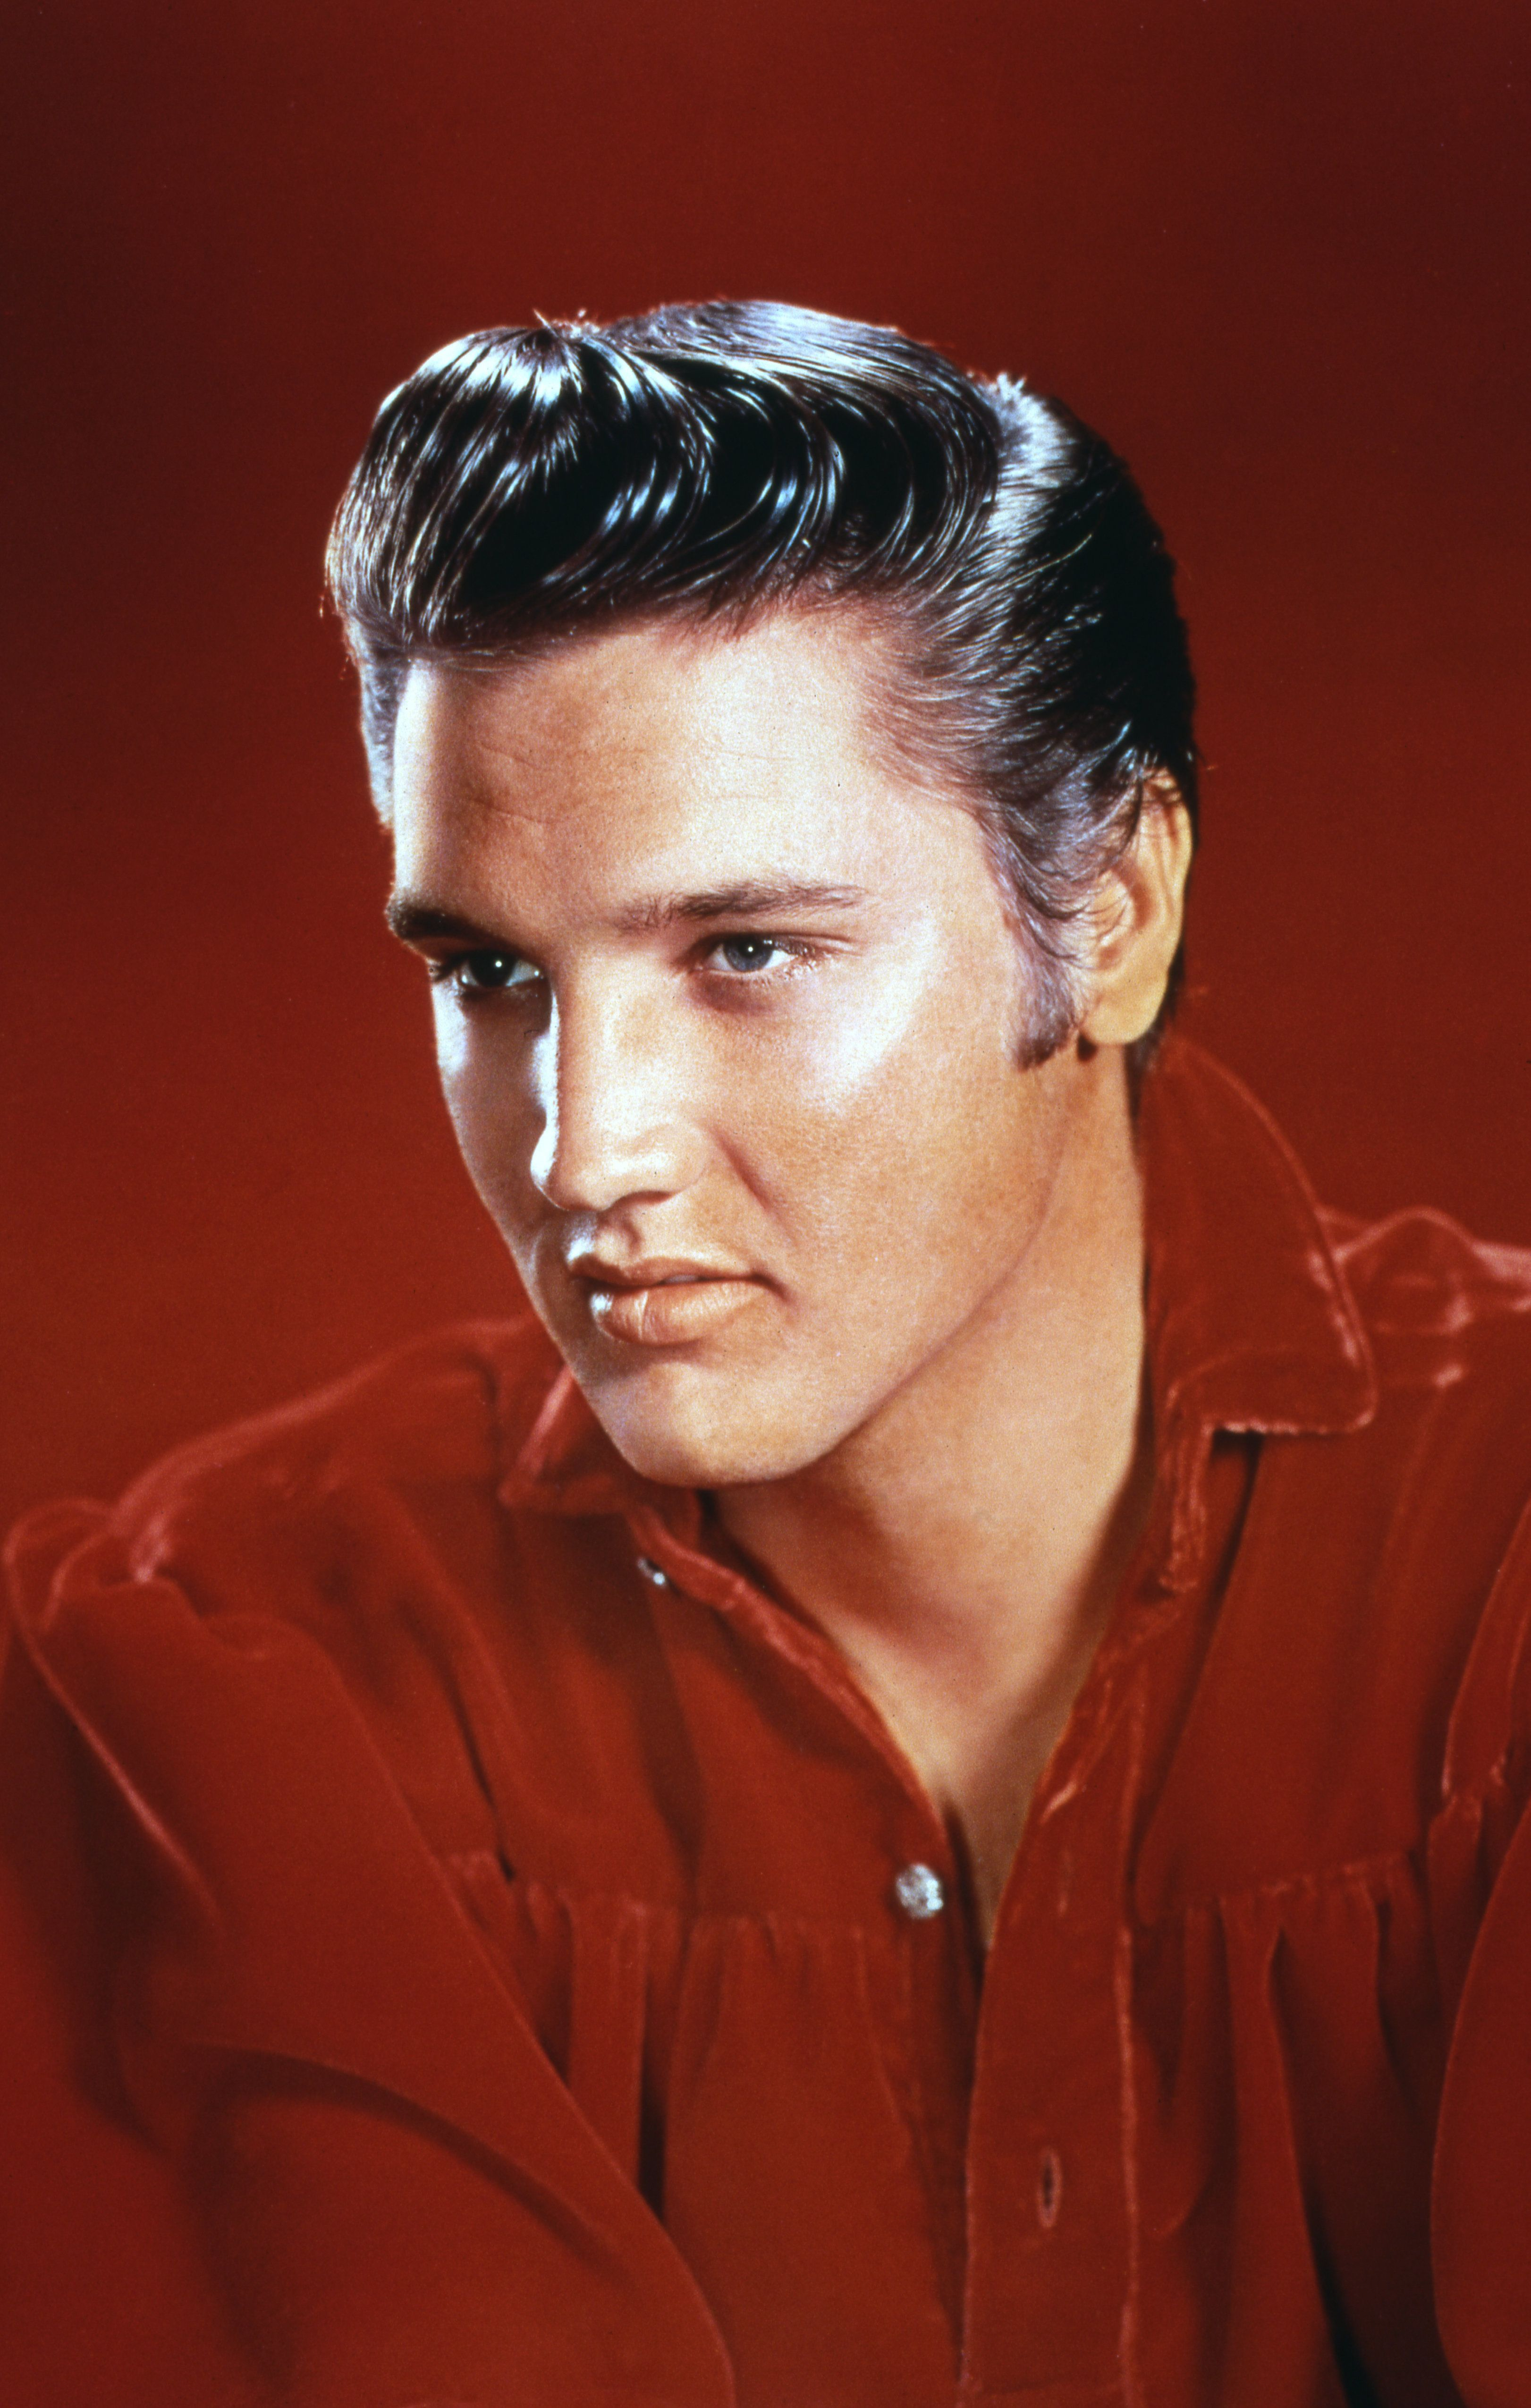 MEMPHIS, TN - 1956:  Rock and roll musician Elvis Presley poses for a portrait in Memphis, Tennessee in 1956. Photo by Michael Ochs Archives/Getty Images